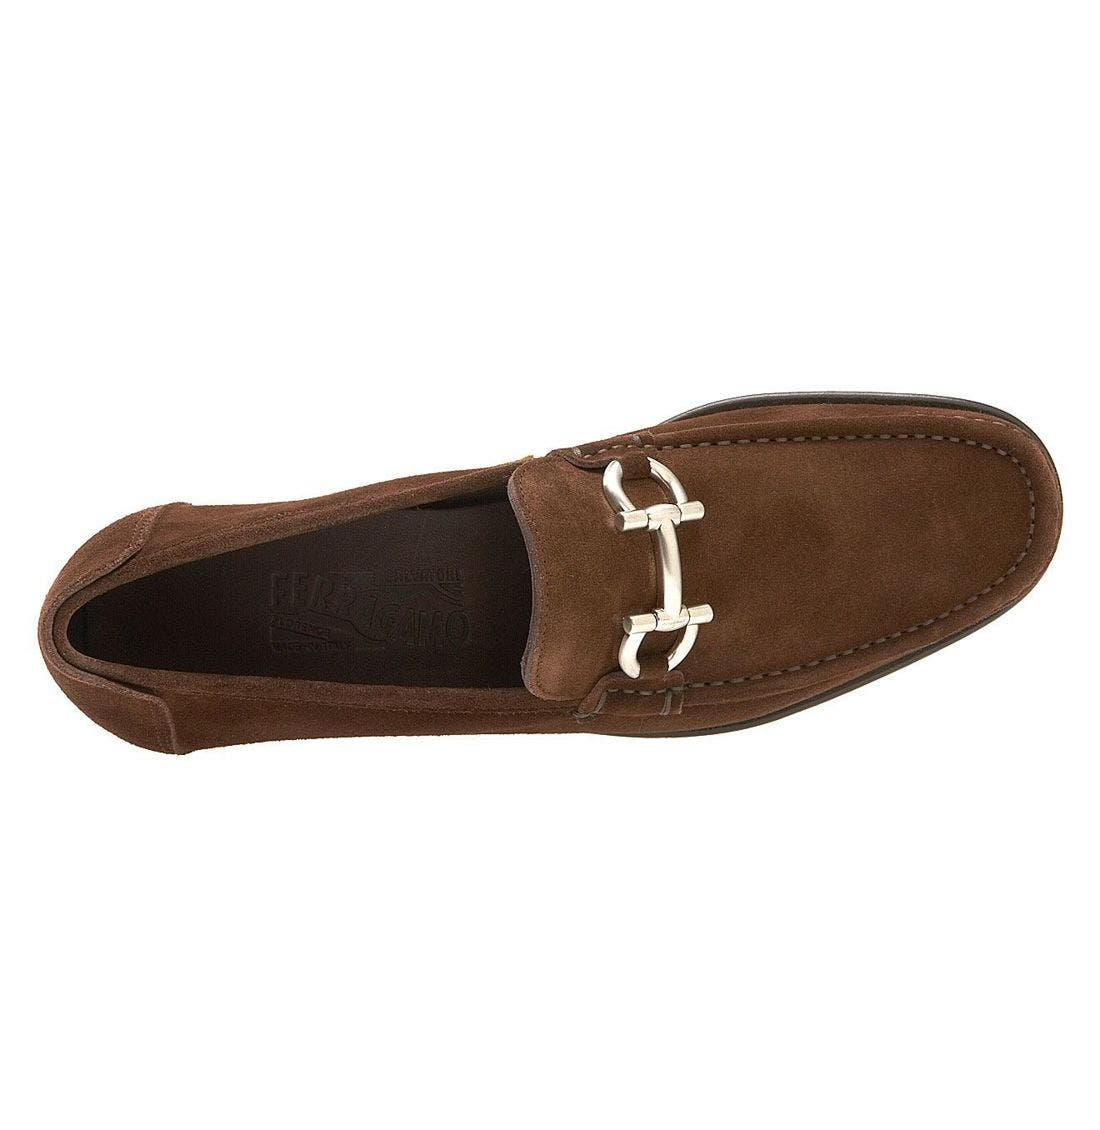 SALVATORE FERRAGAMO,                             'Cancun' Loafer,                             Alternate thumbnail 3, color,                             HKS